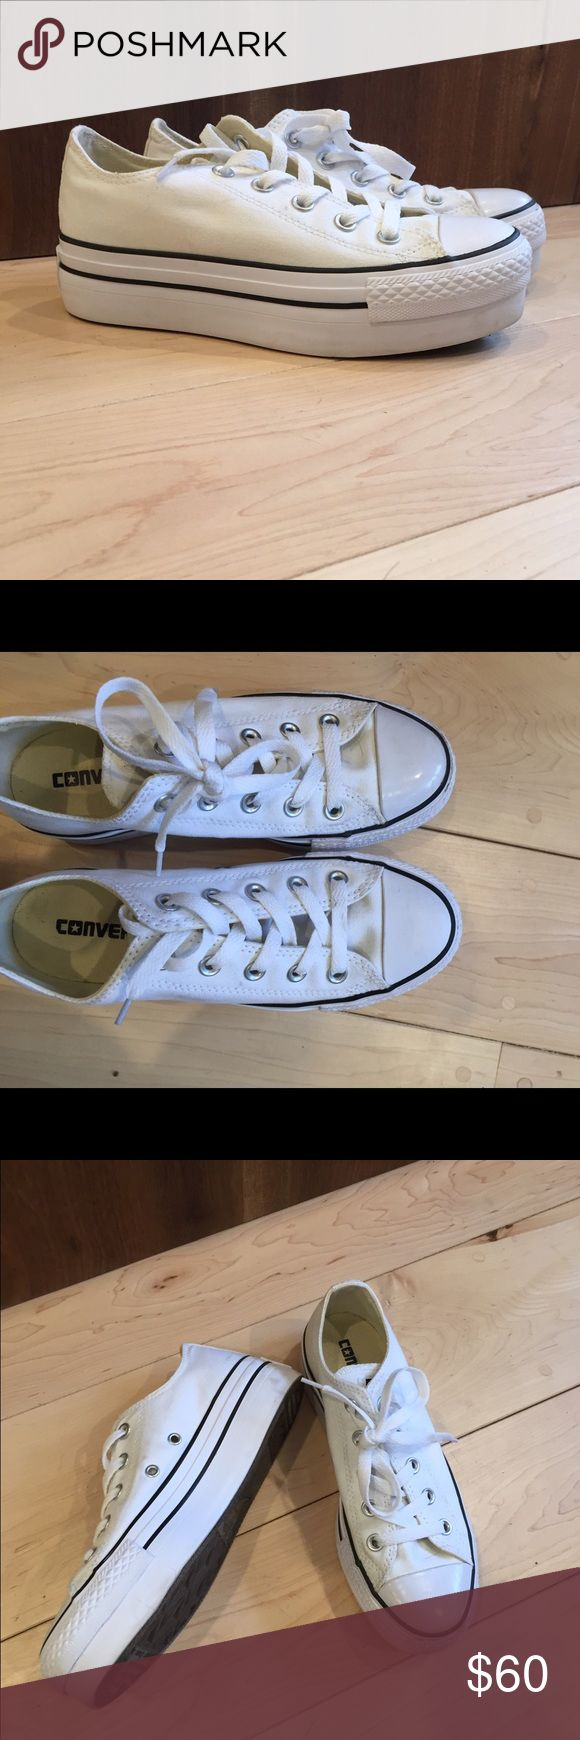 Platform converse all stars White platform converse sneakers. Great shape worn only one time. Converse Shoes Sneakers